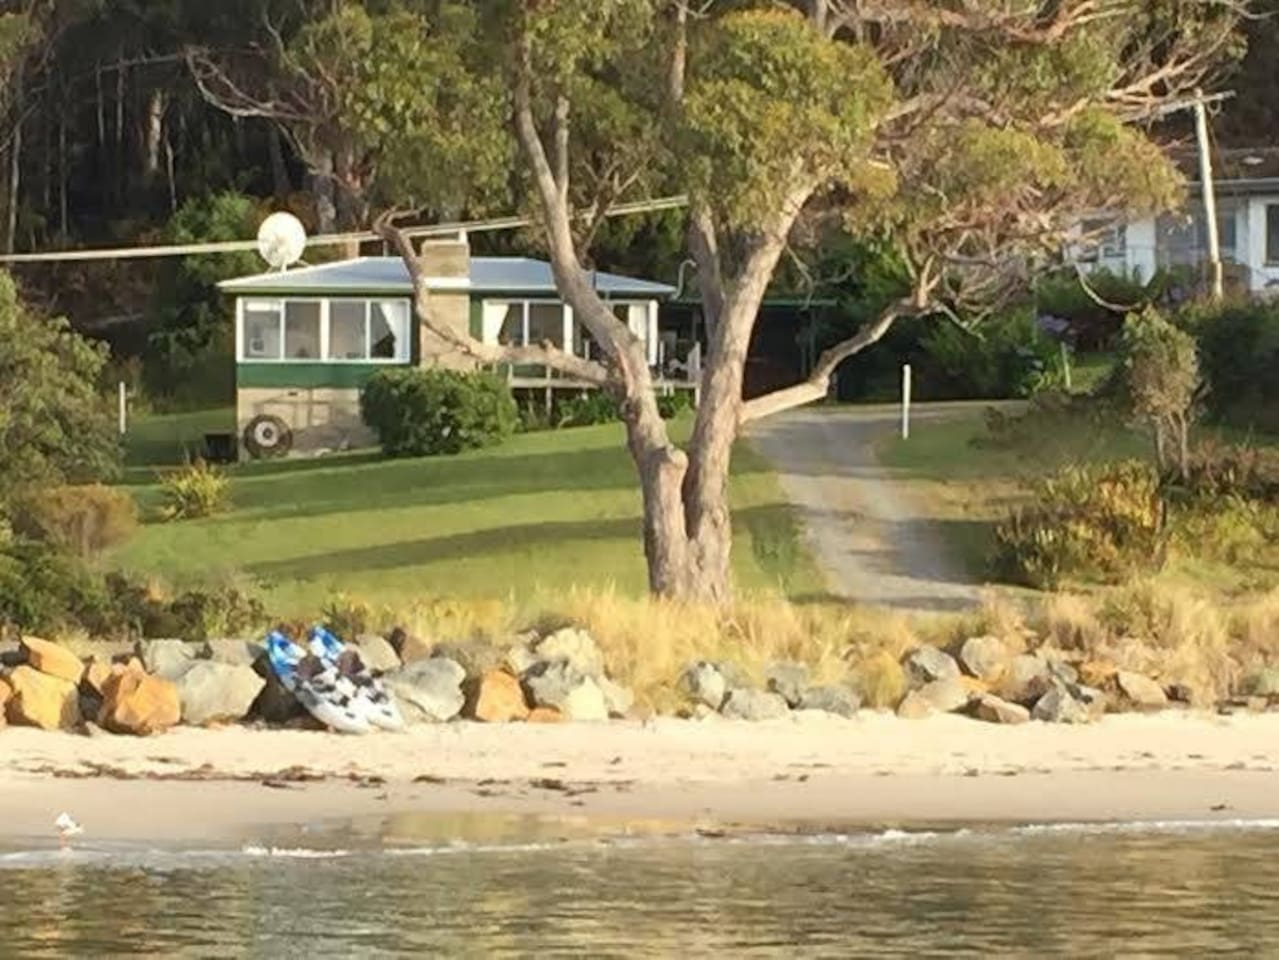 View of cottage from the beach in front